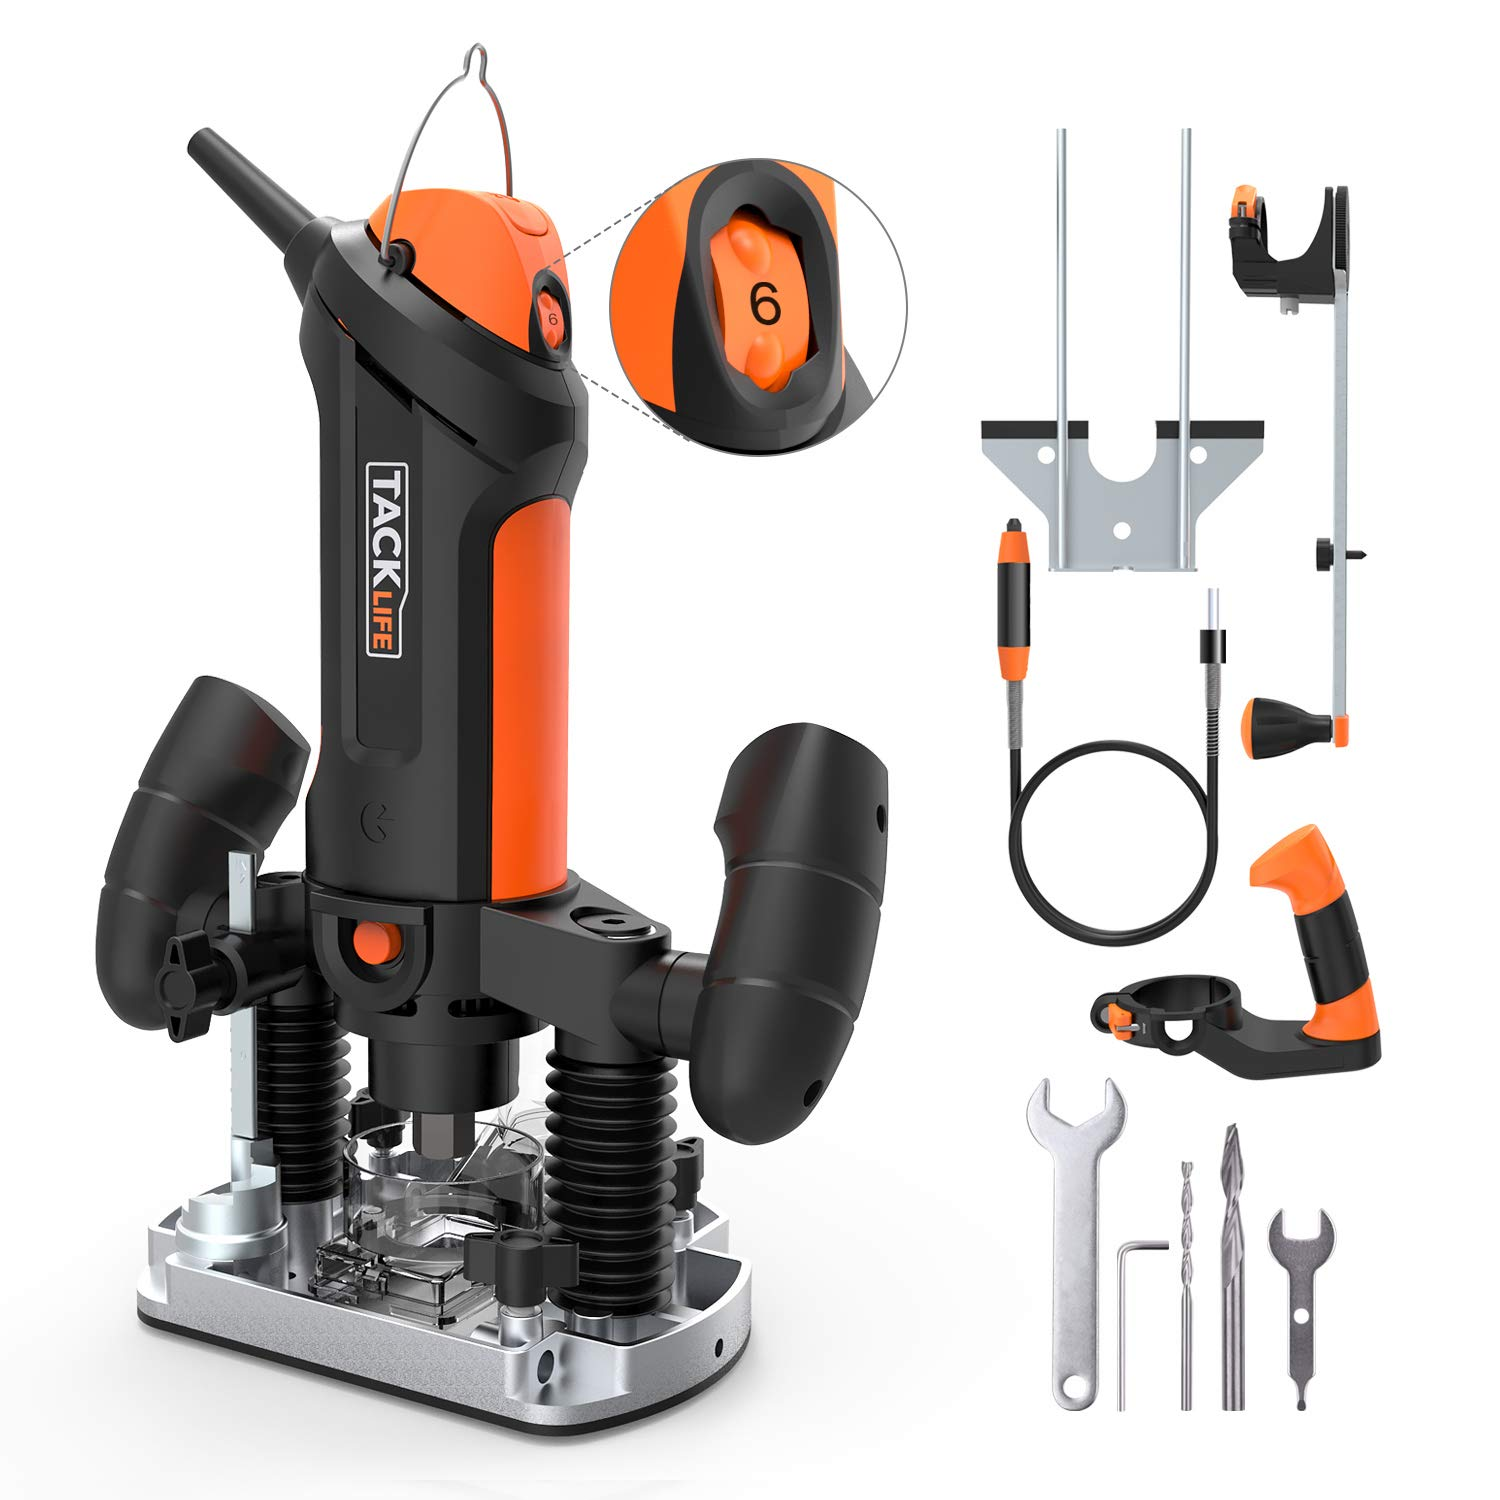 Compact Router, Tacklife 5A 30000RPM Fixed and Plunge Router with 6 Variable Speed, 1000MM Flexible Shaft, 10ft/3M Cable, Auxiliary Handle, Compasses, 2 Router Bit, Aluminum Guide - PTR01A